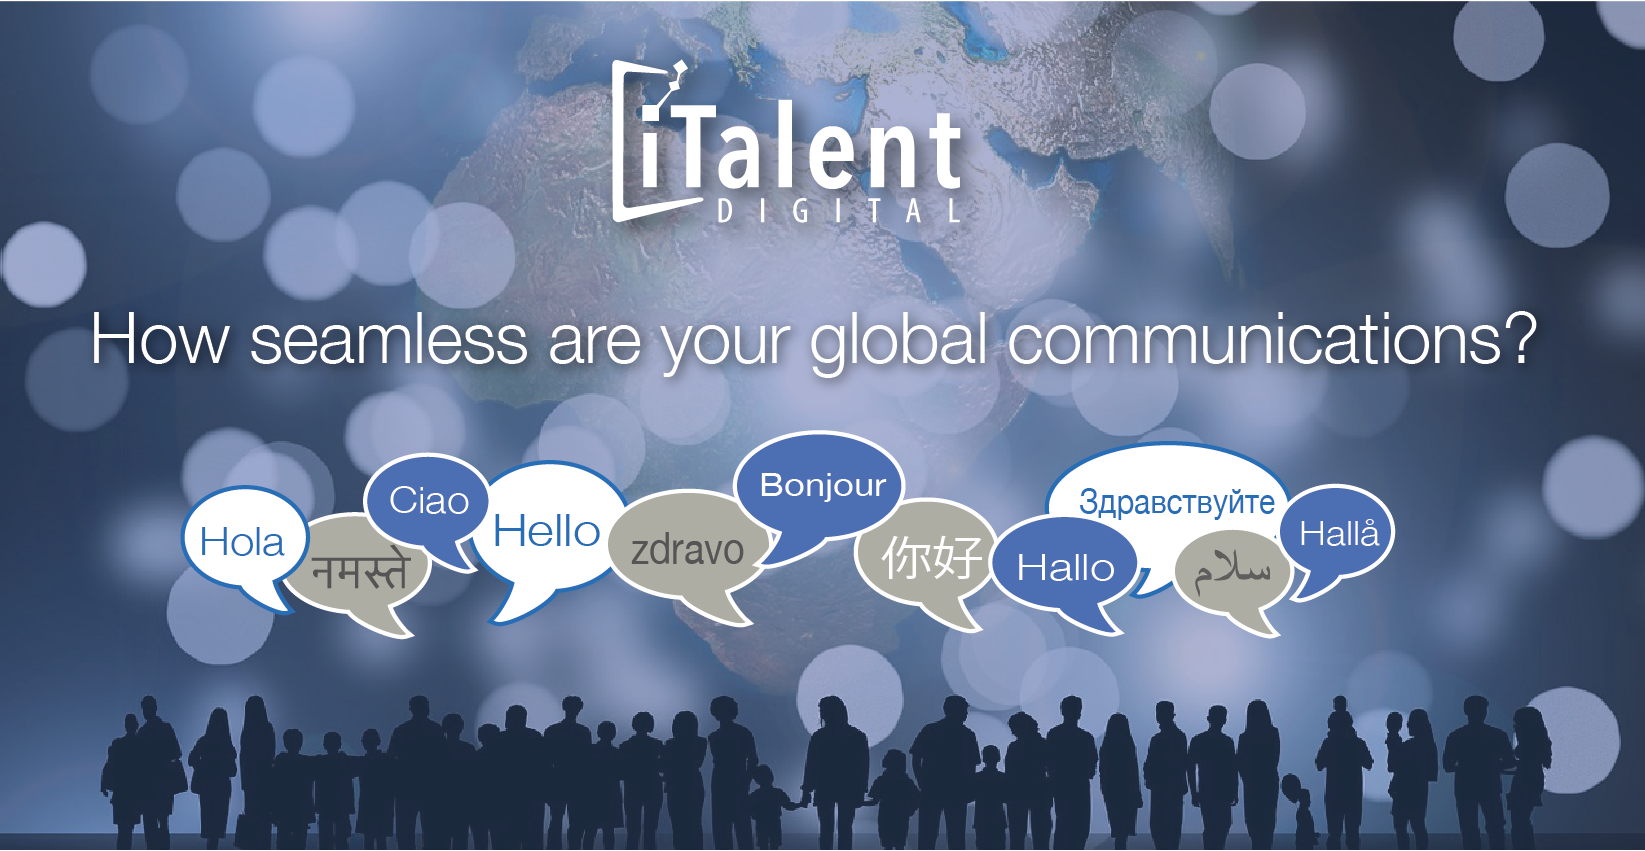 How seamless are your global communications? Crowd of people speaking in different languages